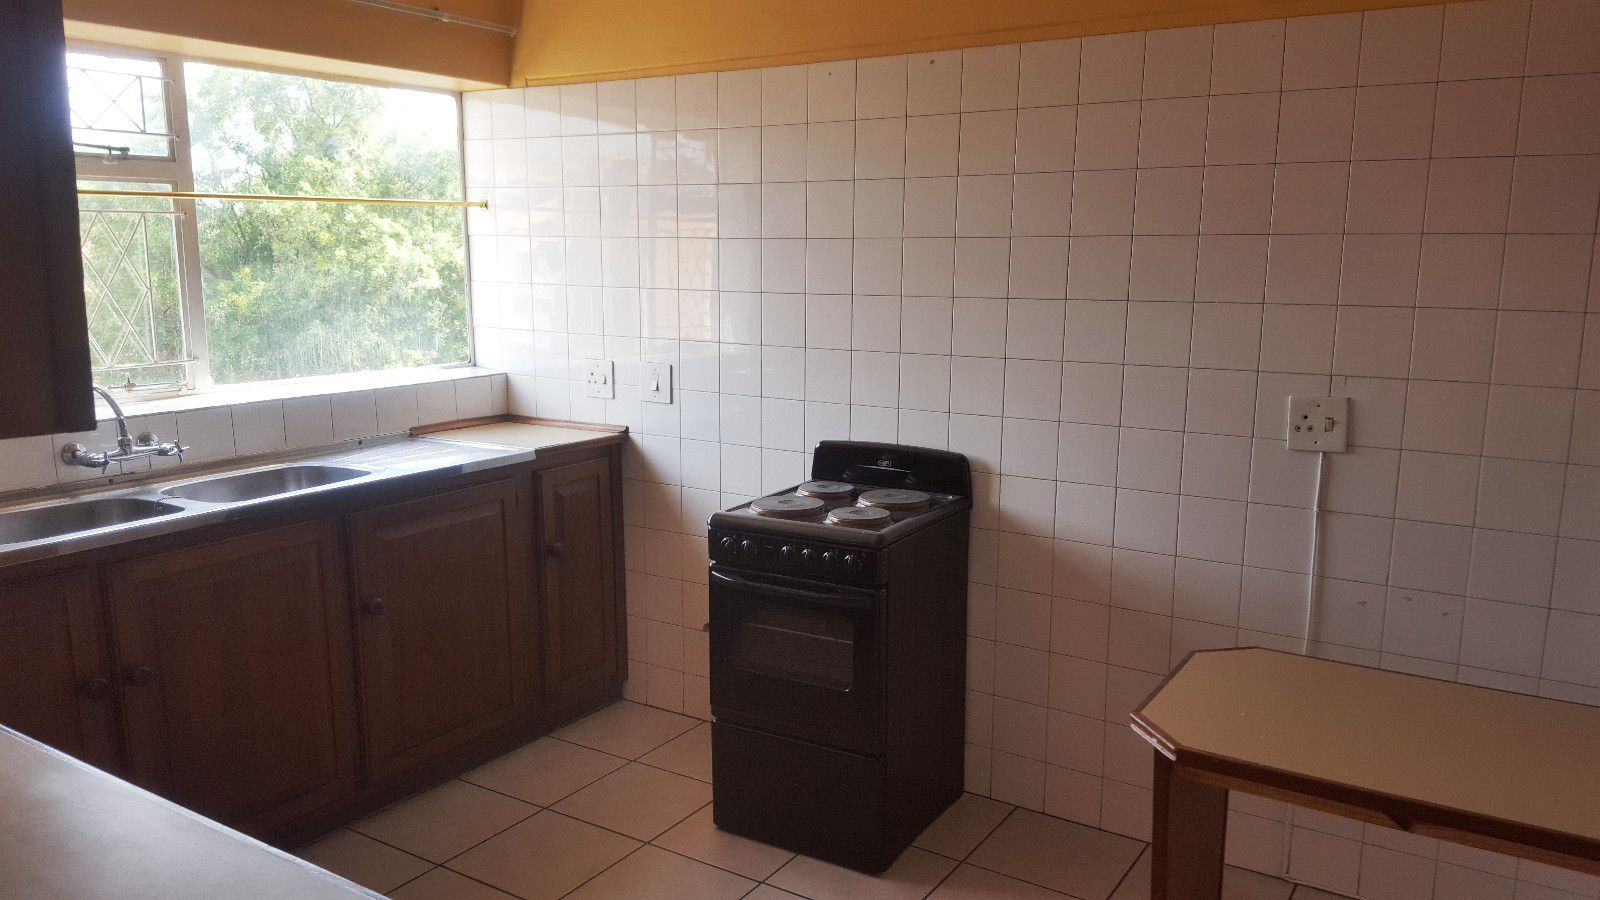 Potchefstroom Central property for sale. Ref No: 13449643. Picture no 4